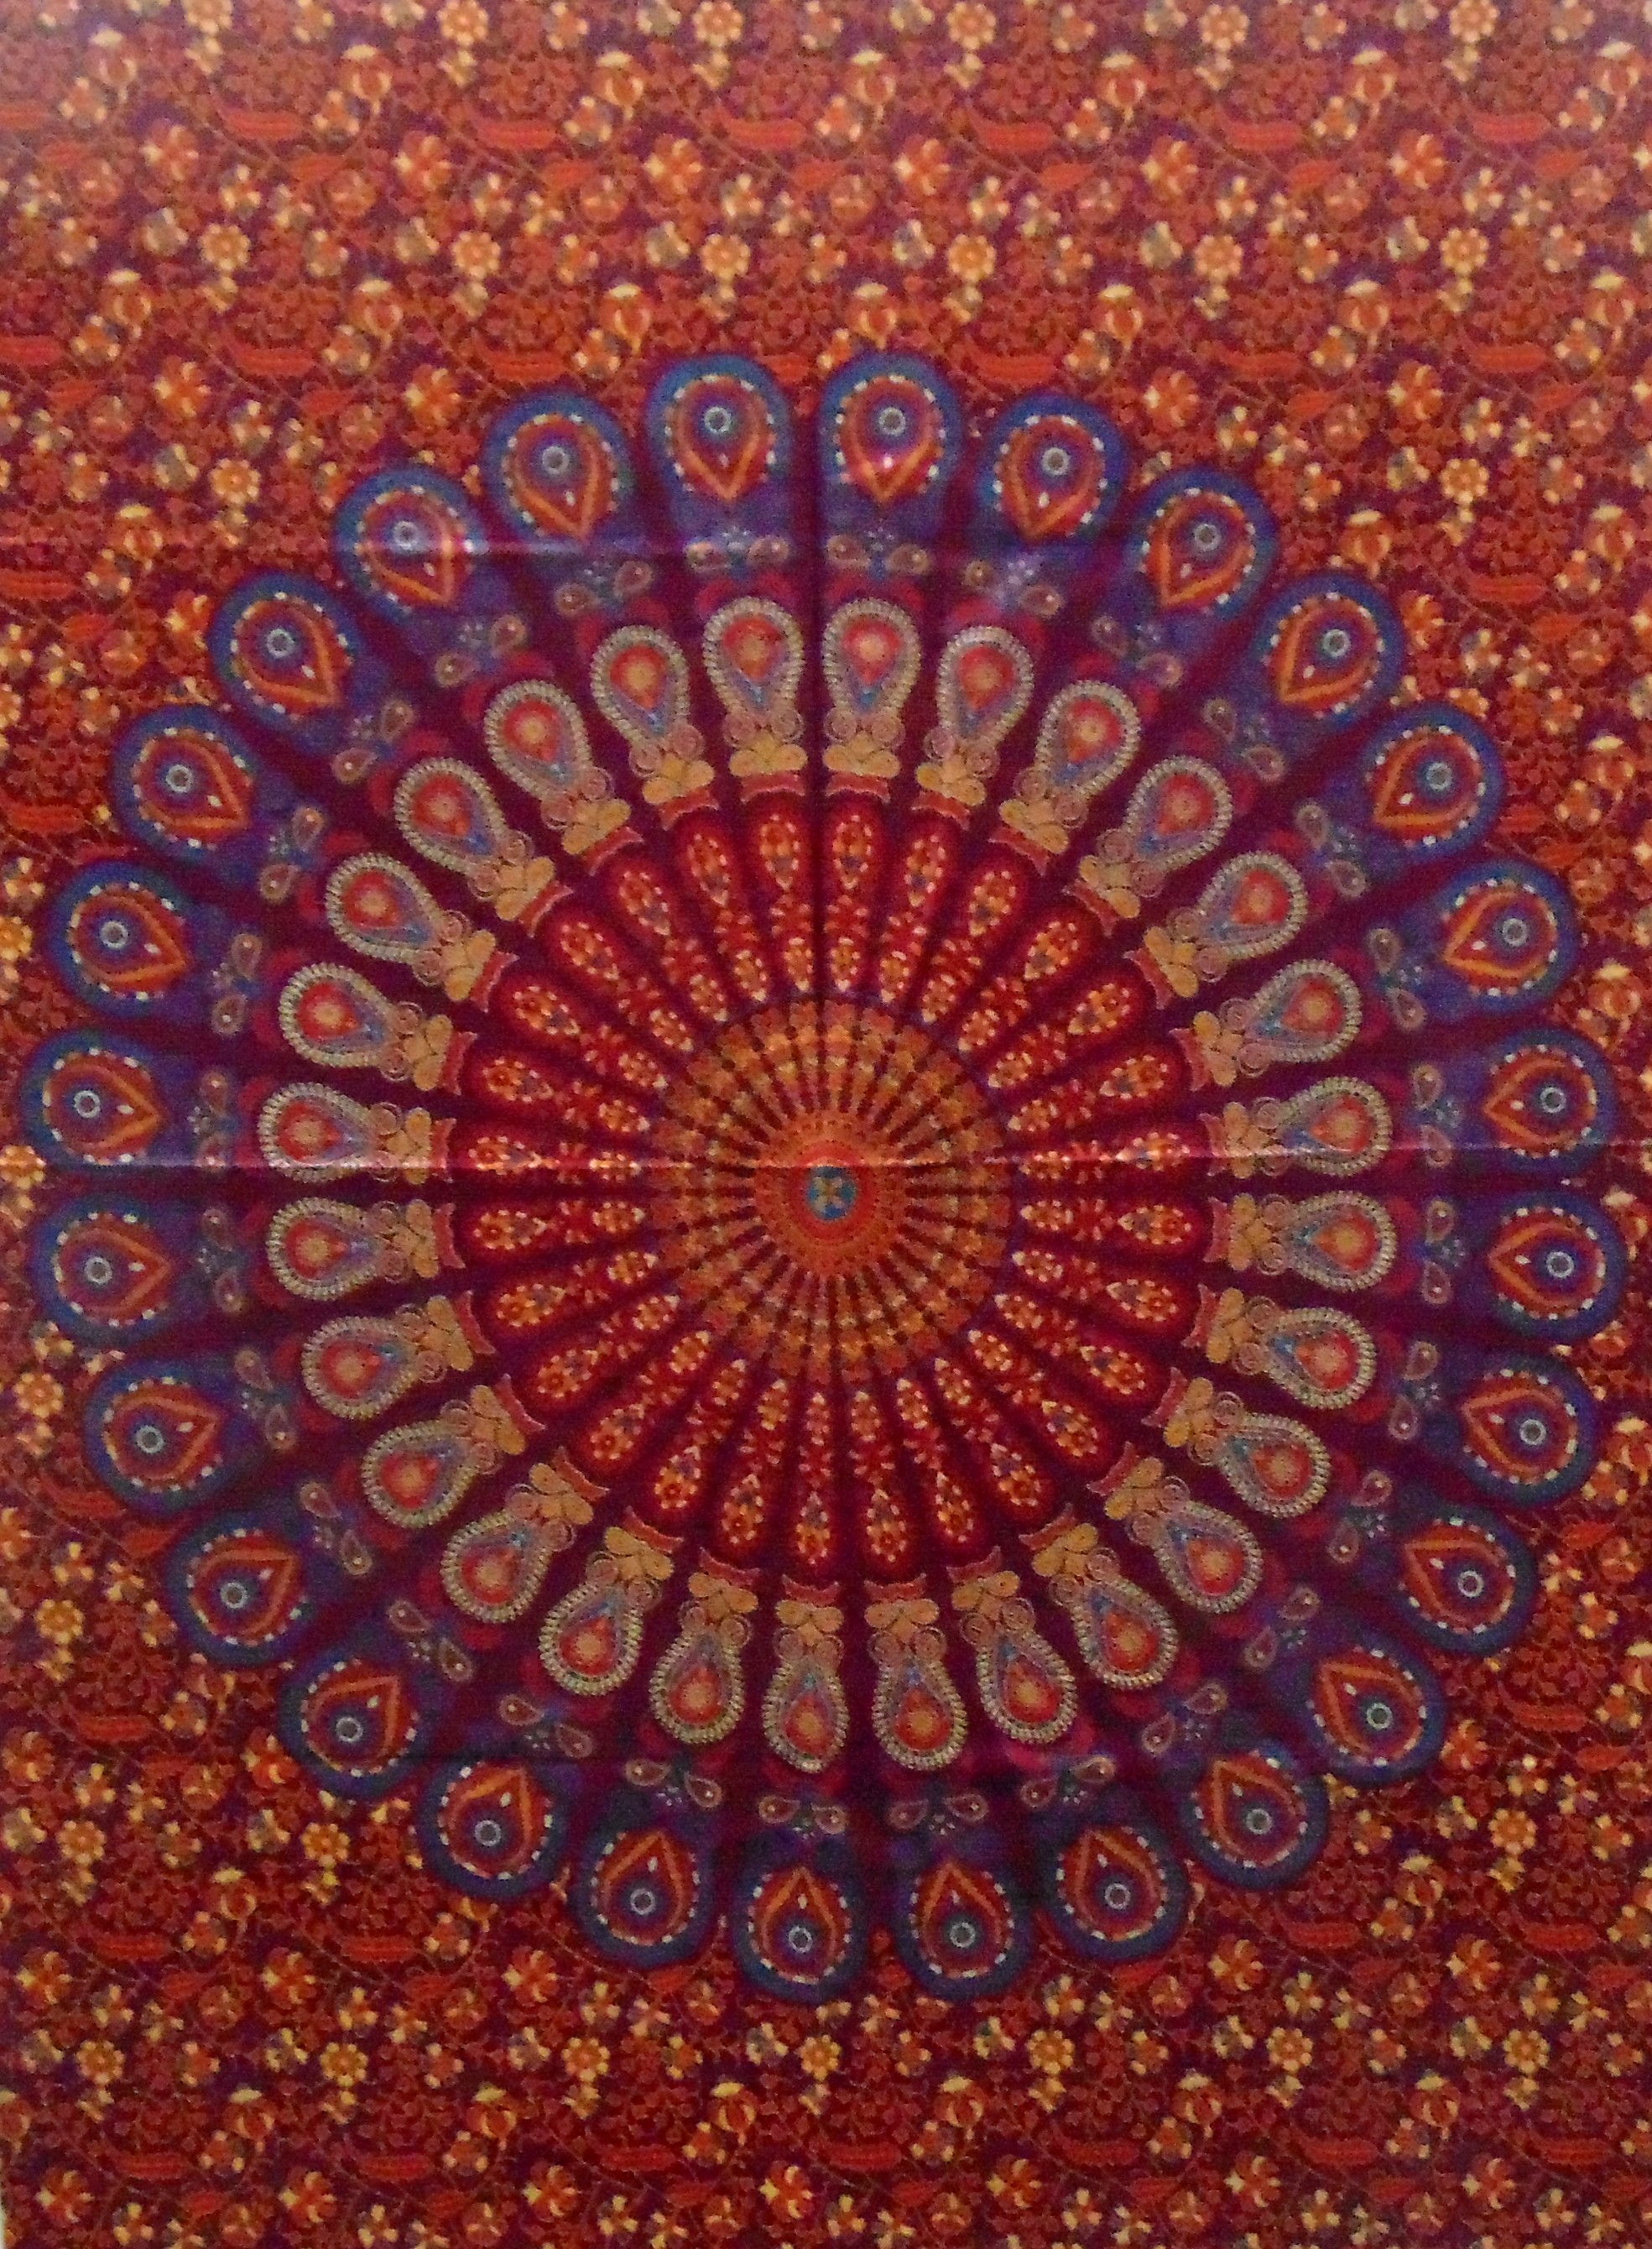 Heyrumbh Handicrafts Peacock Wing Mandala Tapestry Wall Hanging Cotton Poster(Red, 40 X 30 Inches)